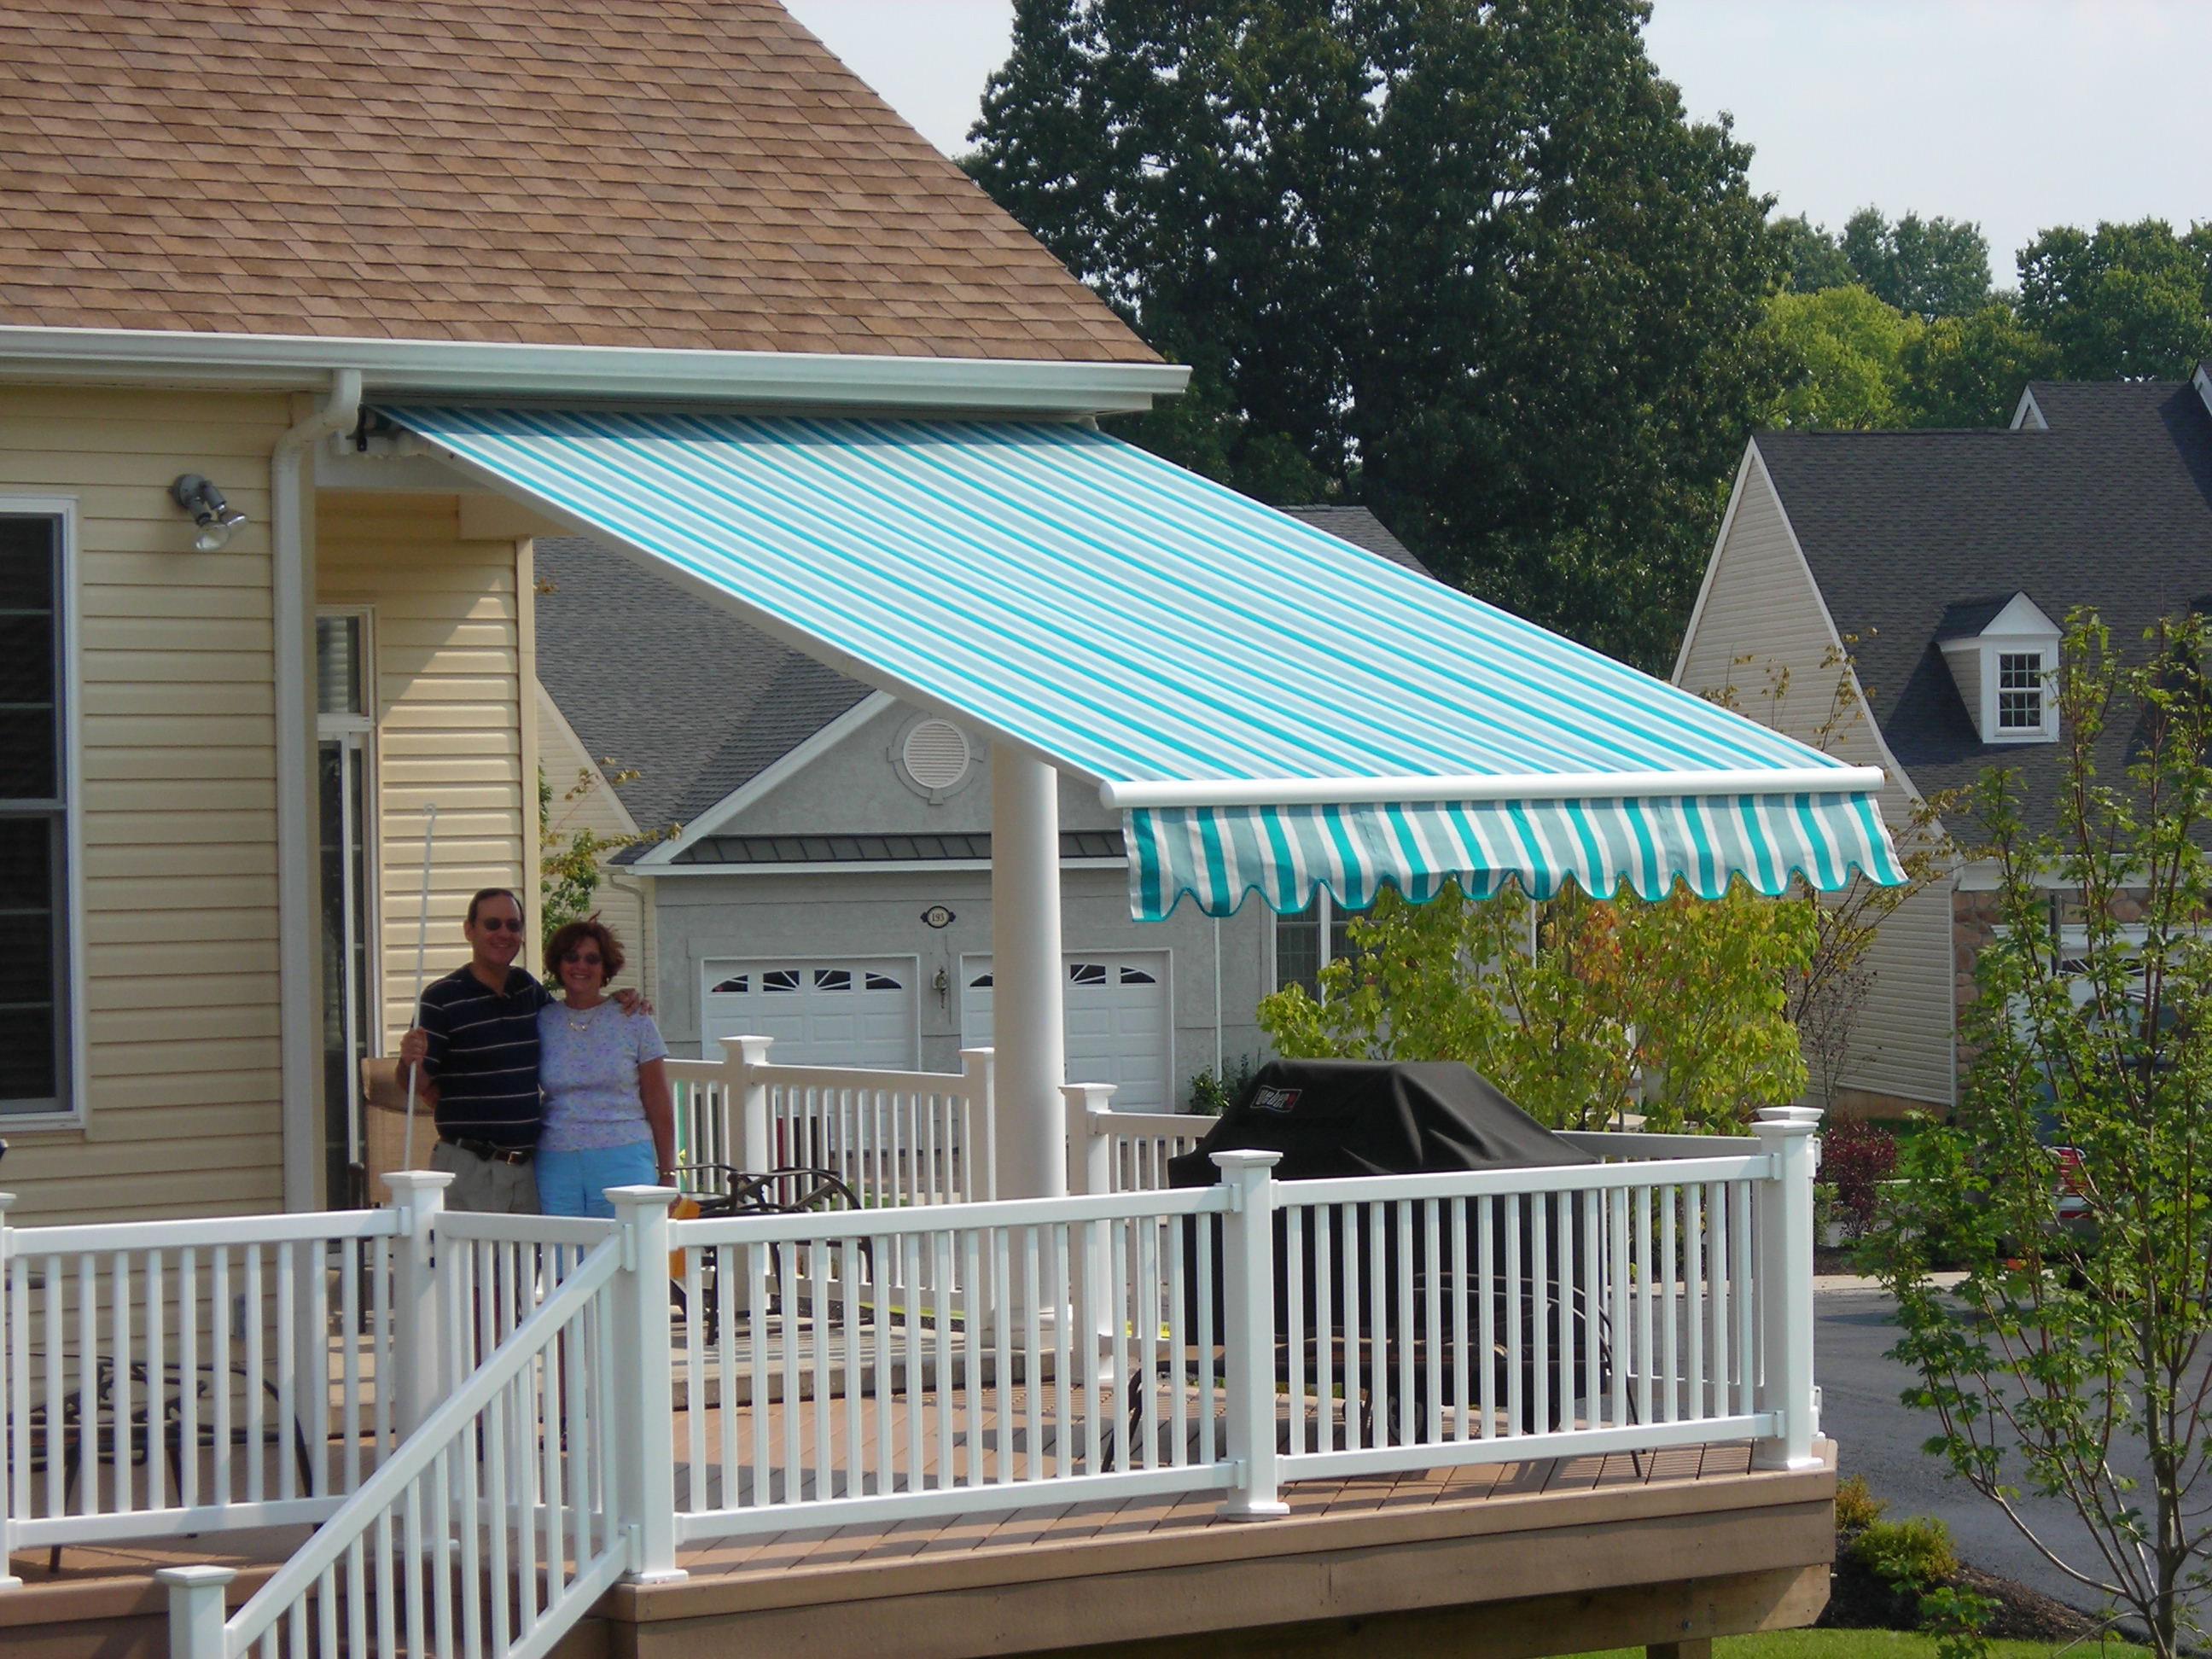 Betterliving Retractable Awnings Model 2 Awning For